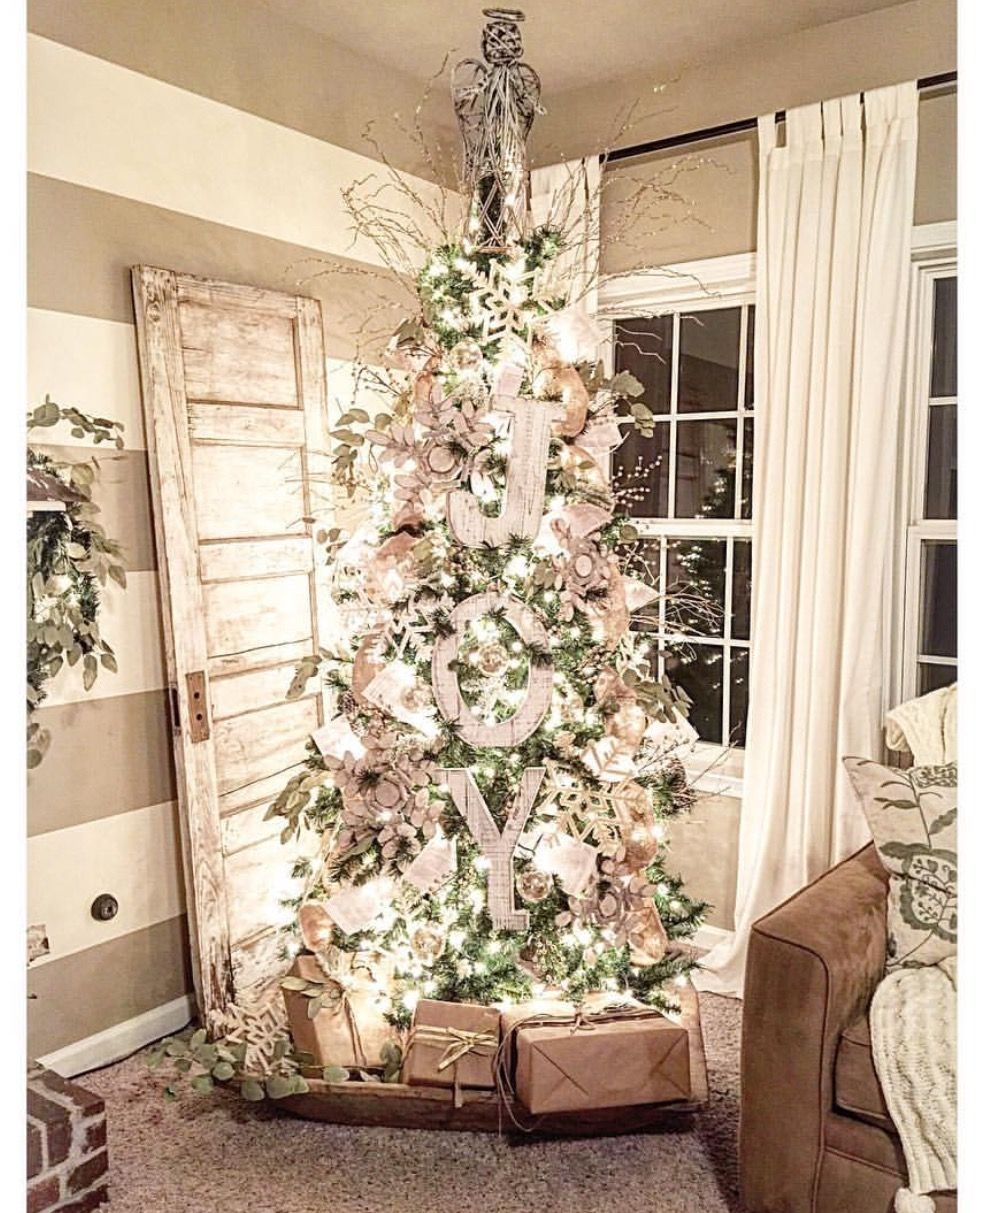 Elegant farmhouse christmas tree in neutral colors home for Elegant neutral paint colors